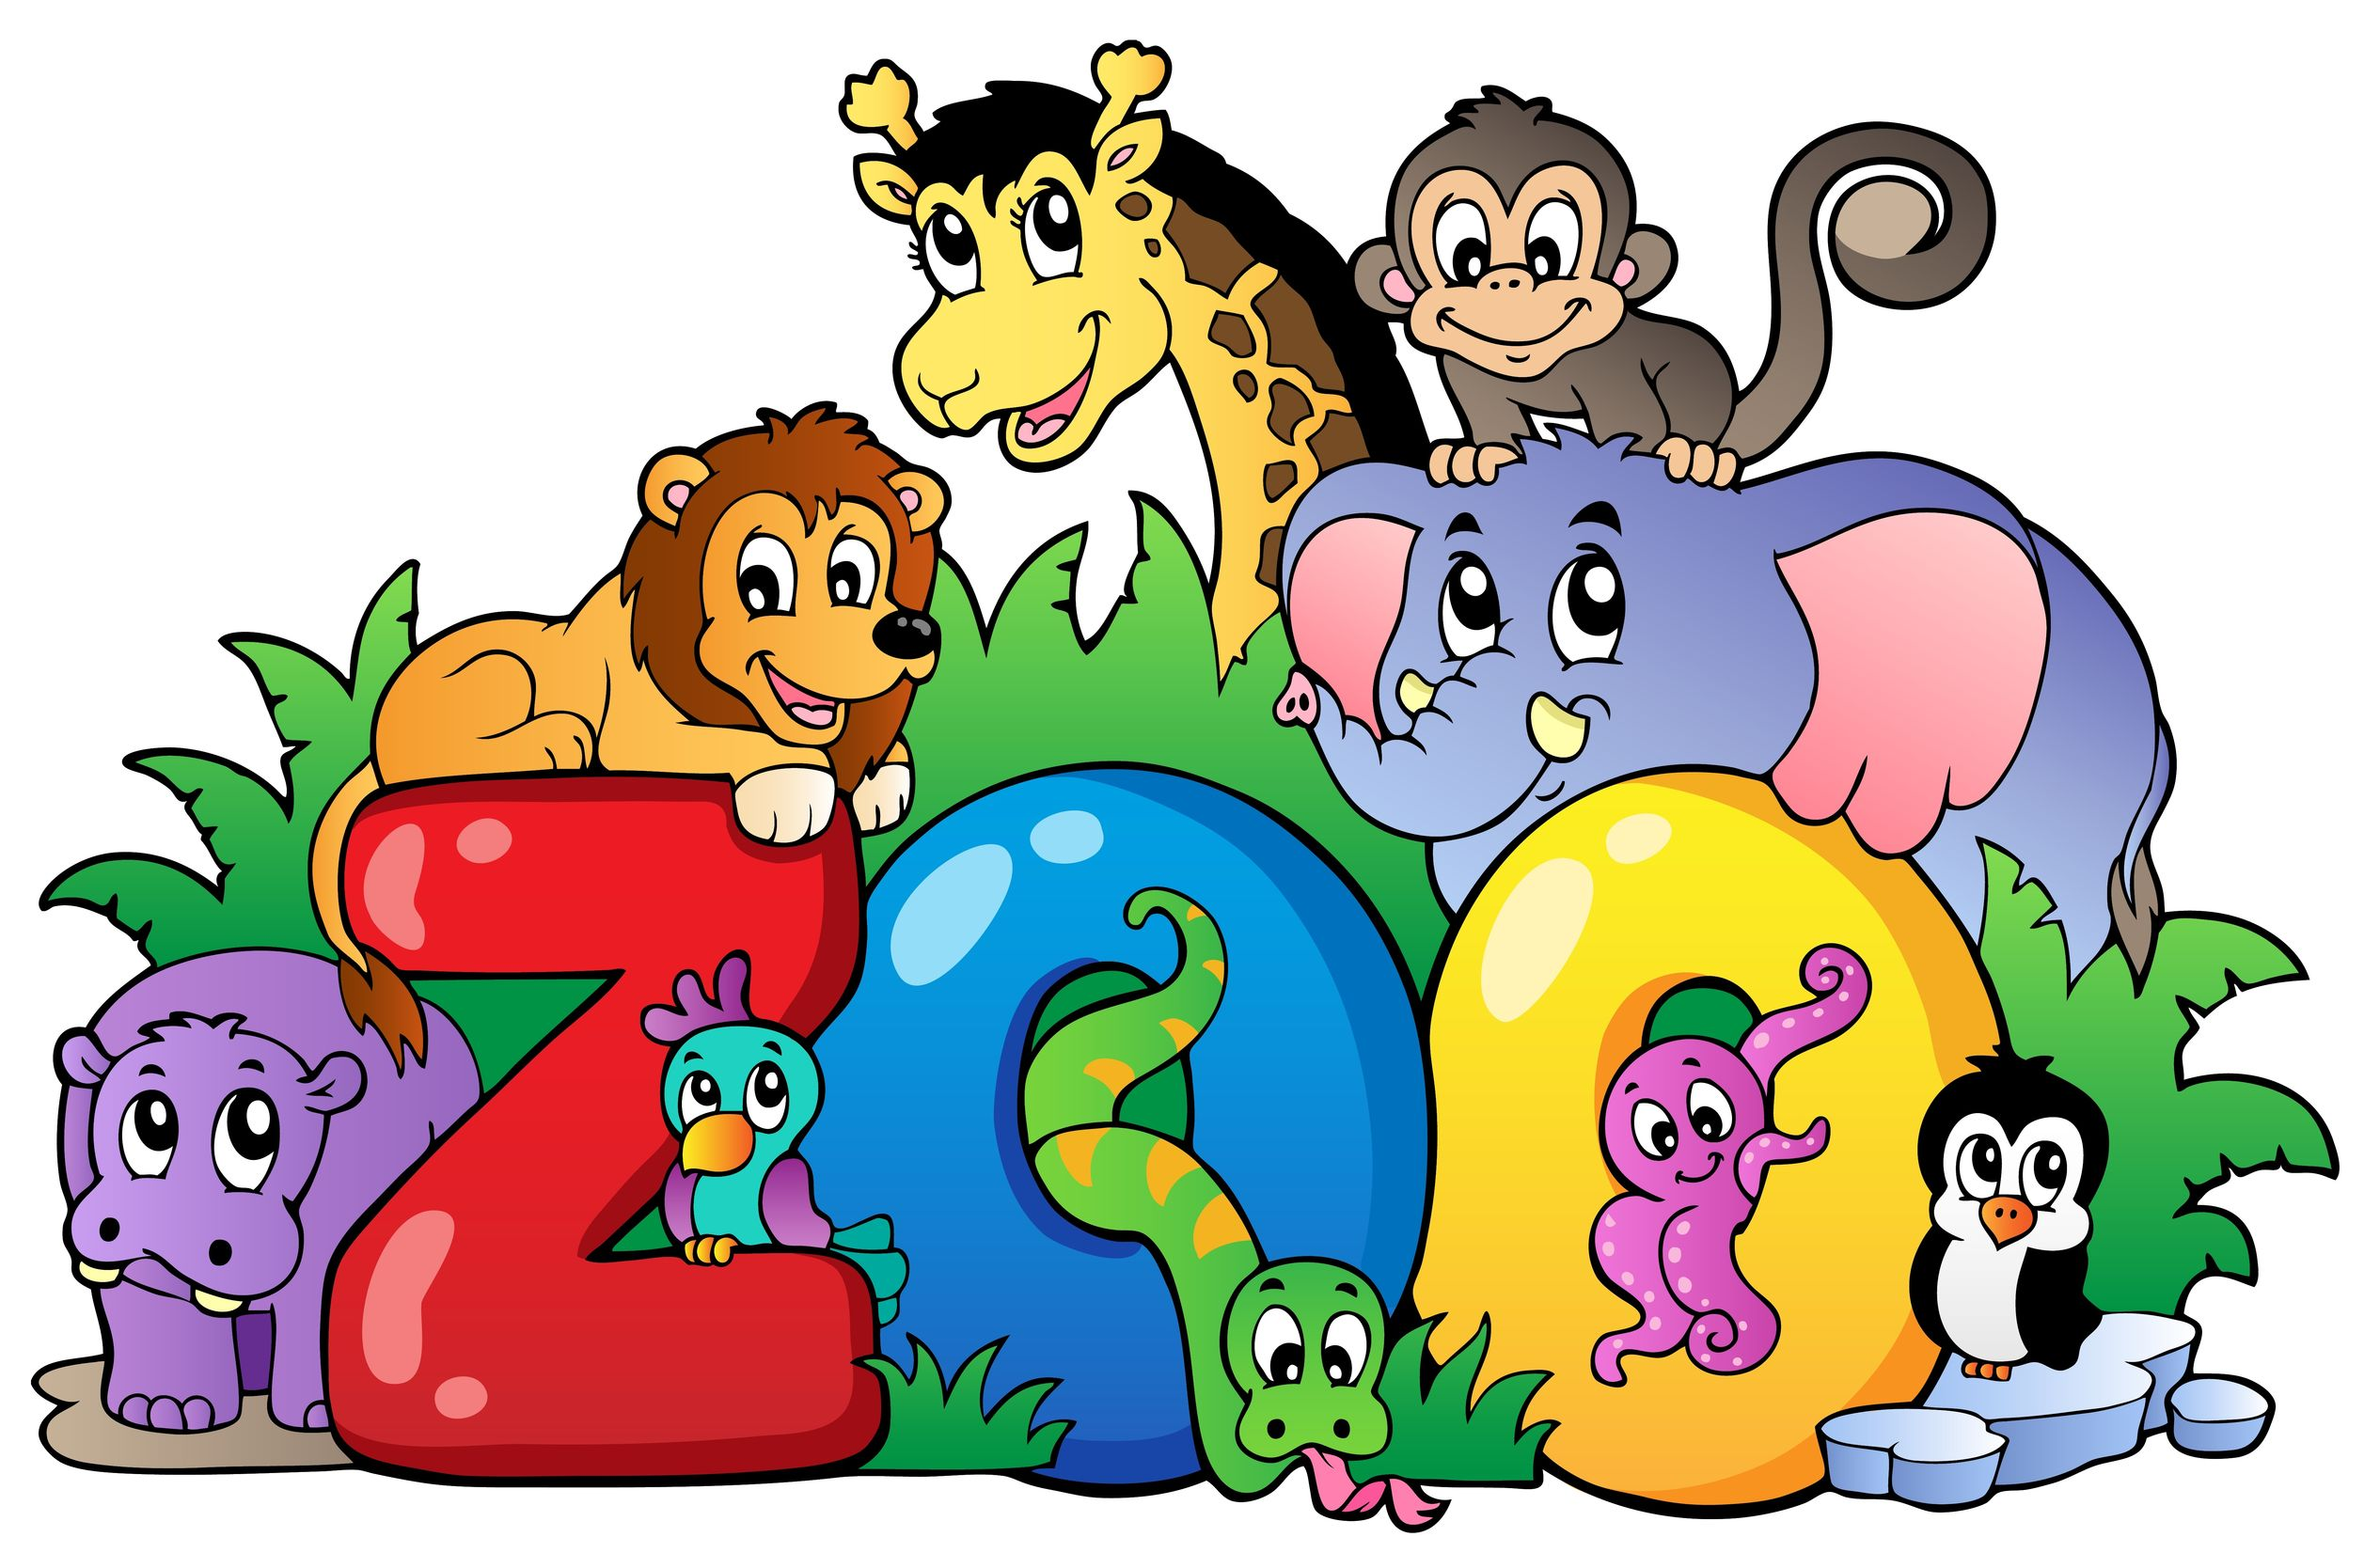 zoo animals clipart at getdrawings com free for personal use zoo rh getdrawings com zoo cartoon youtube zoo clip art free